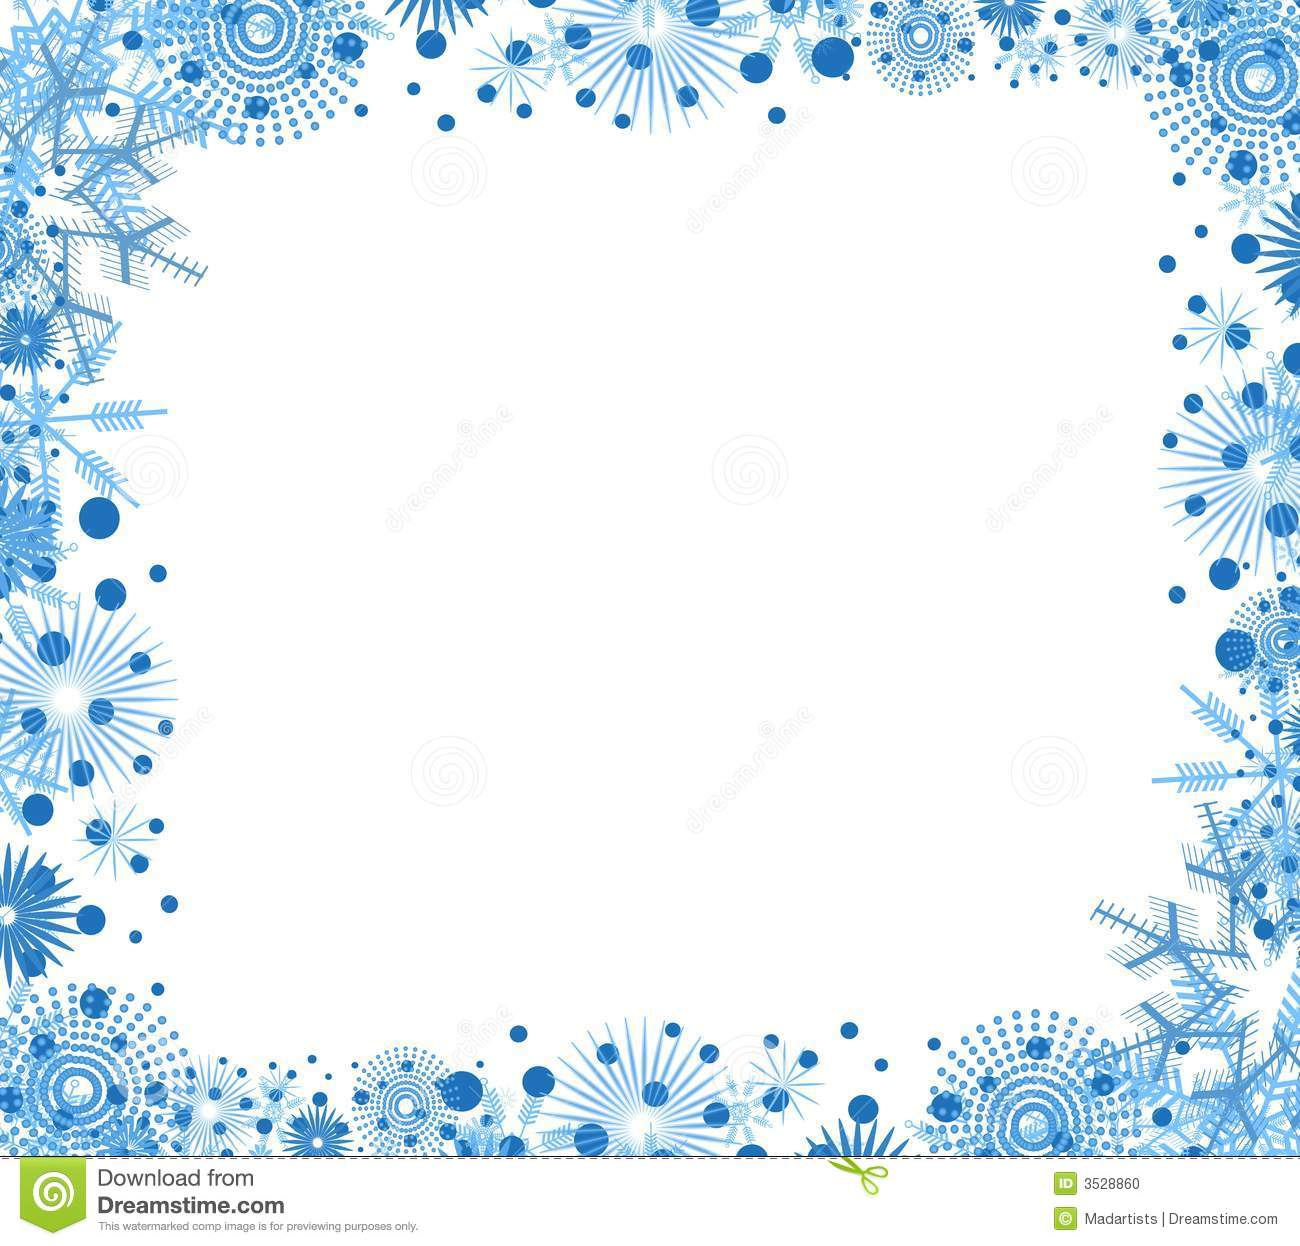 Clip Art Background Border Fe - Free Snowflake Border Clipart